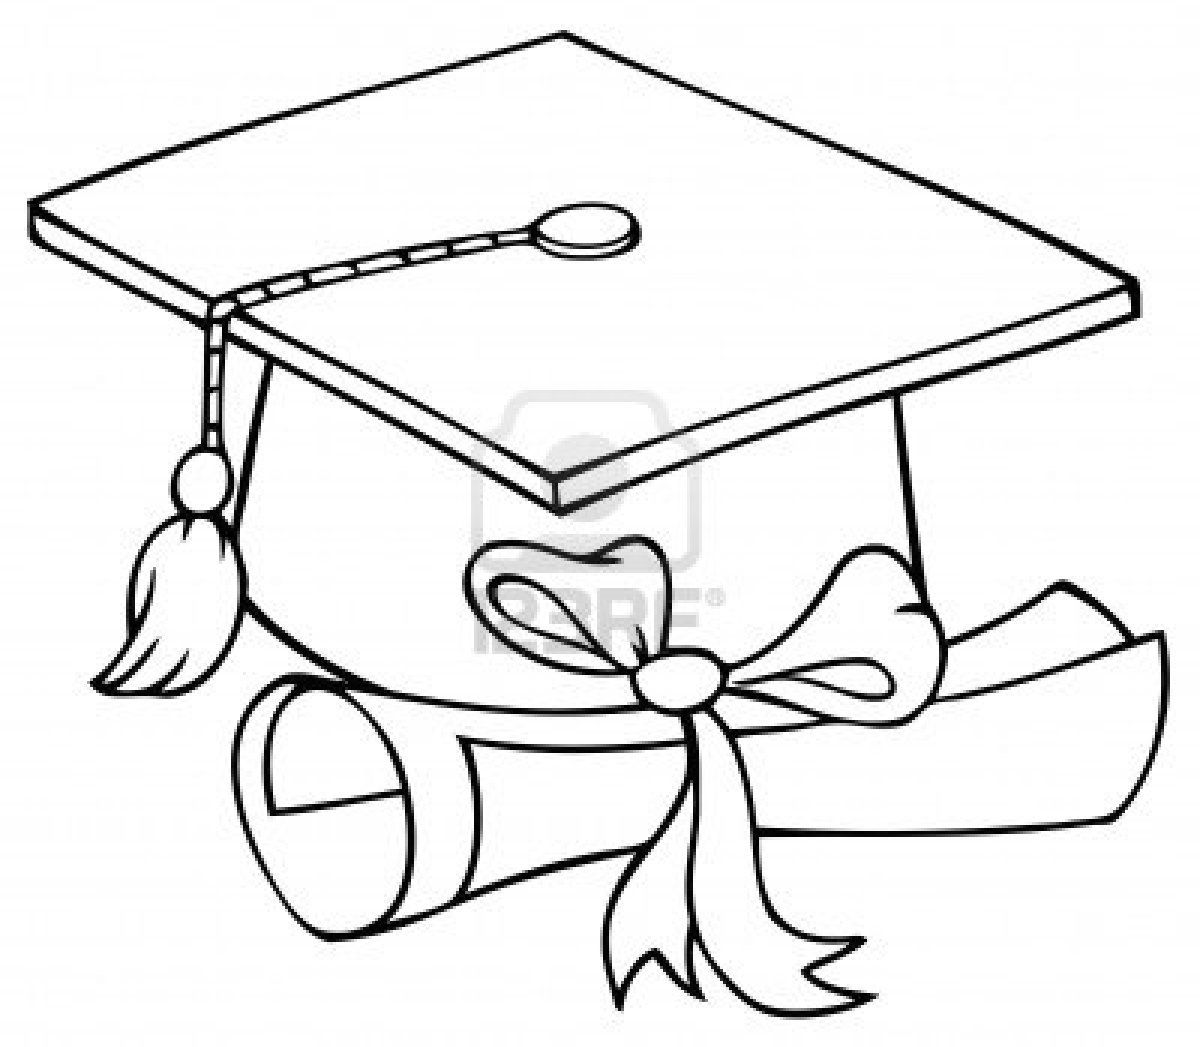 Free printable coloring pages graduation - Graduation Cap Coloring Page Graduation Cap Coloring Page Coloring Pages Pictures Imagixs